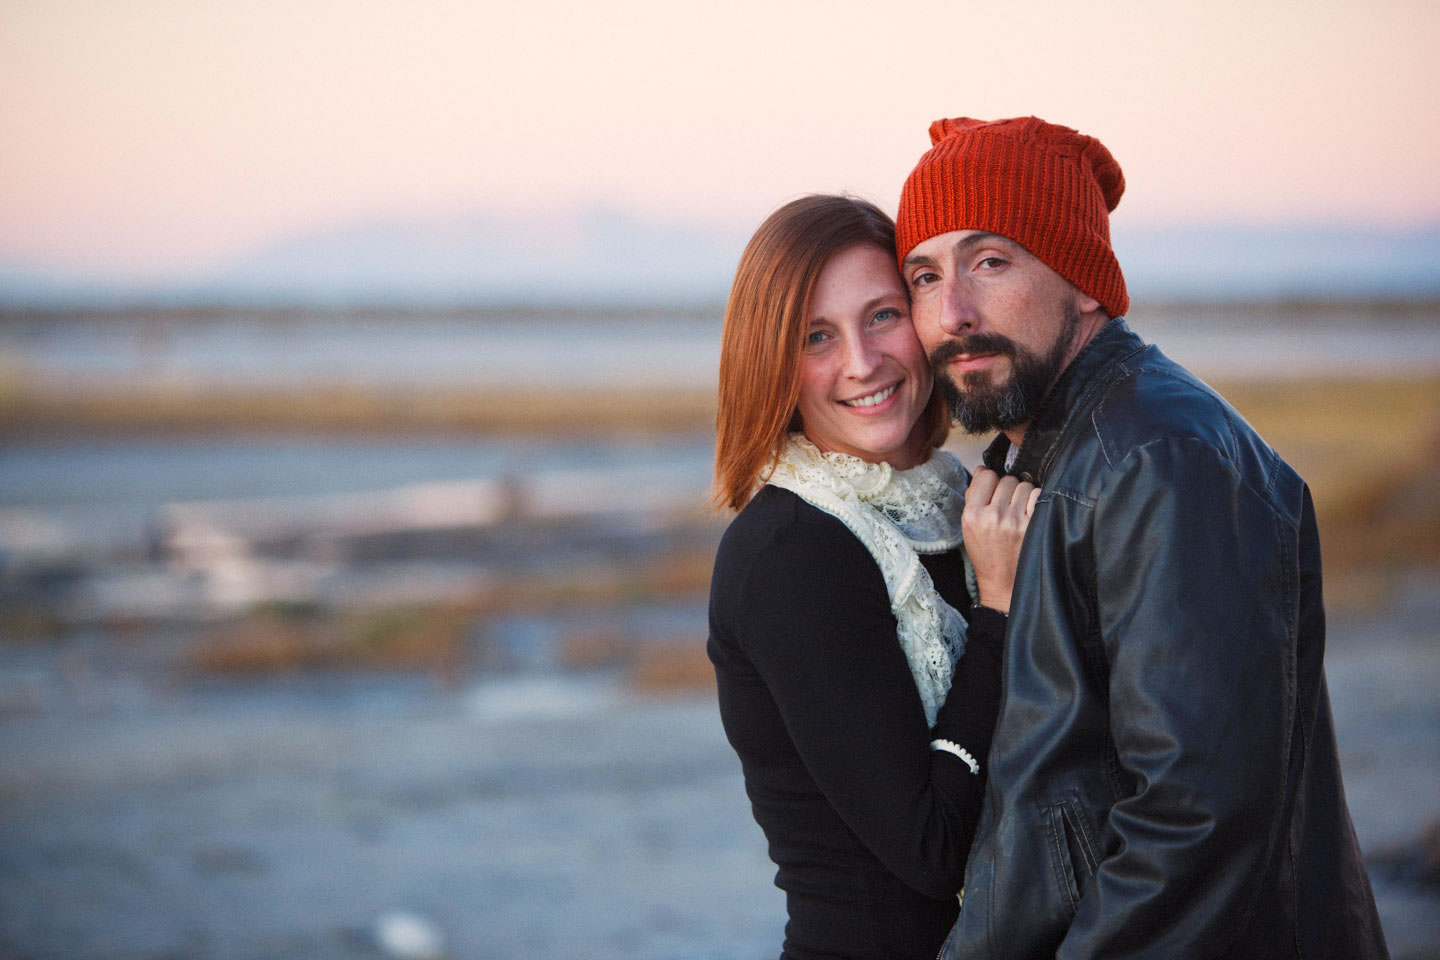 Great Salt Lake after sunset is wonderful for portraits, your shoes will get dirty